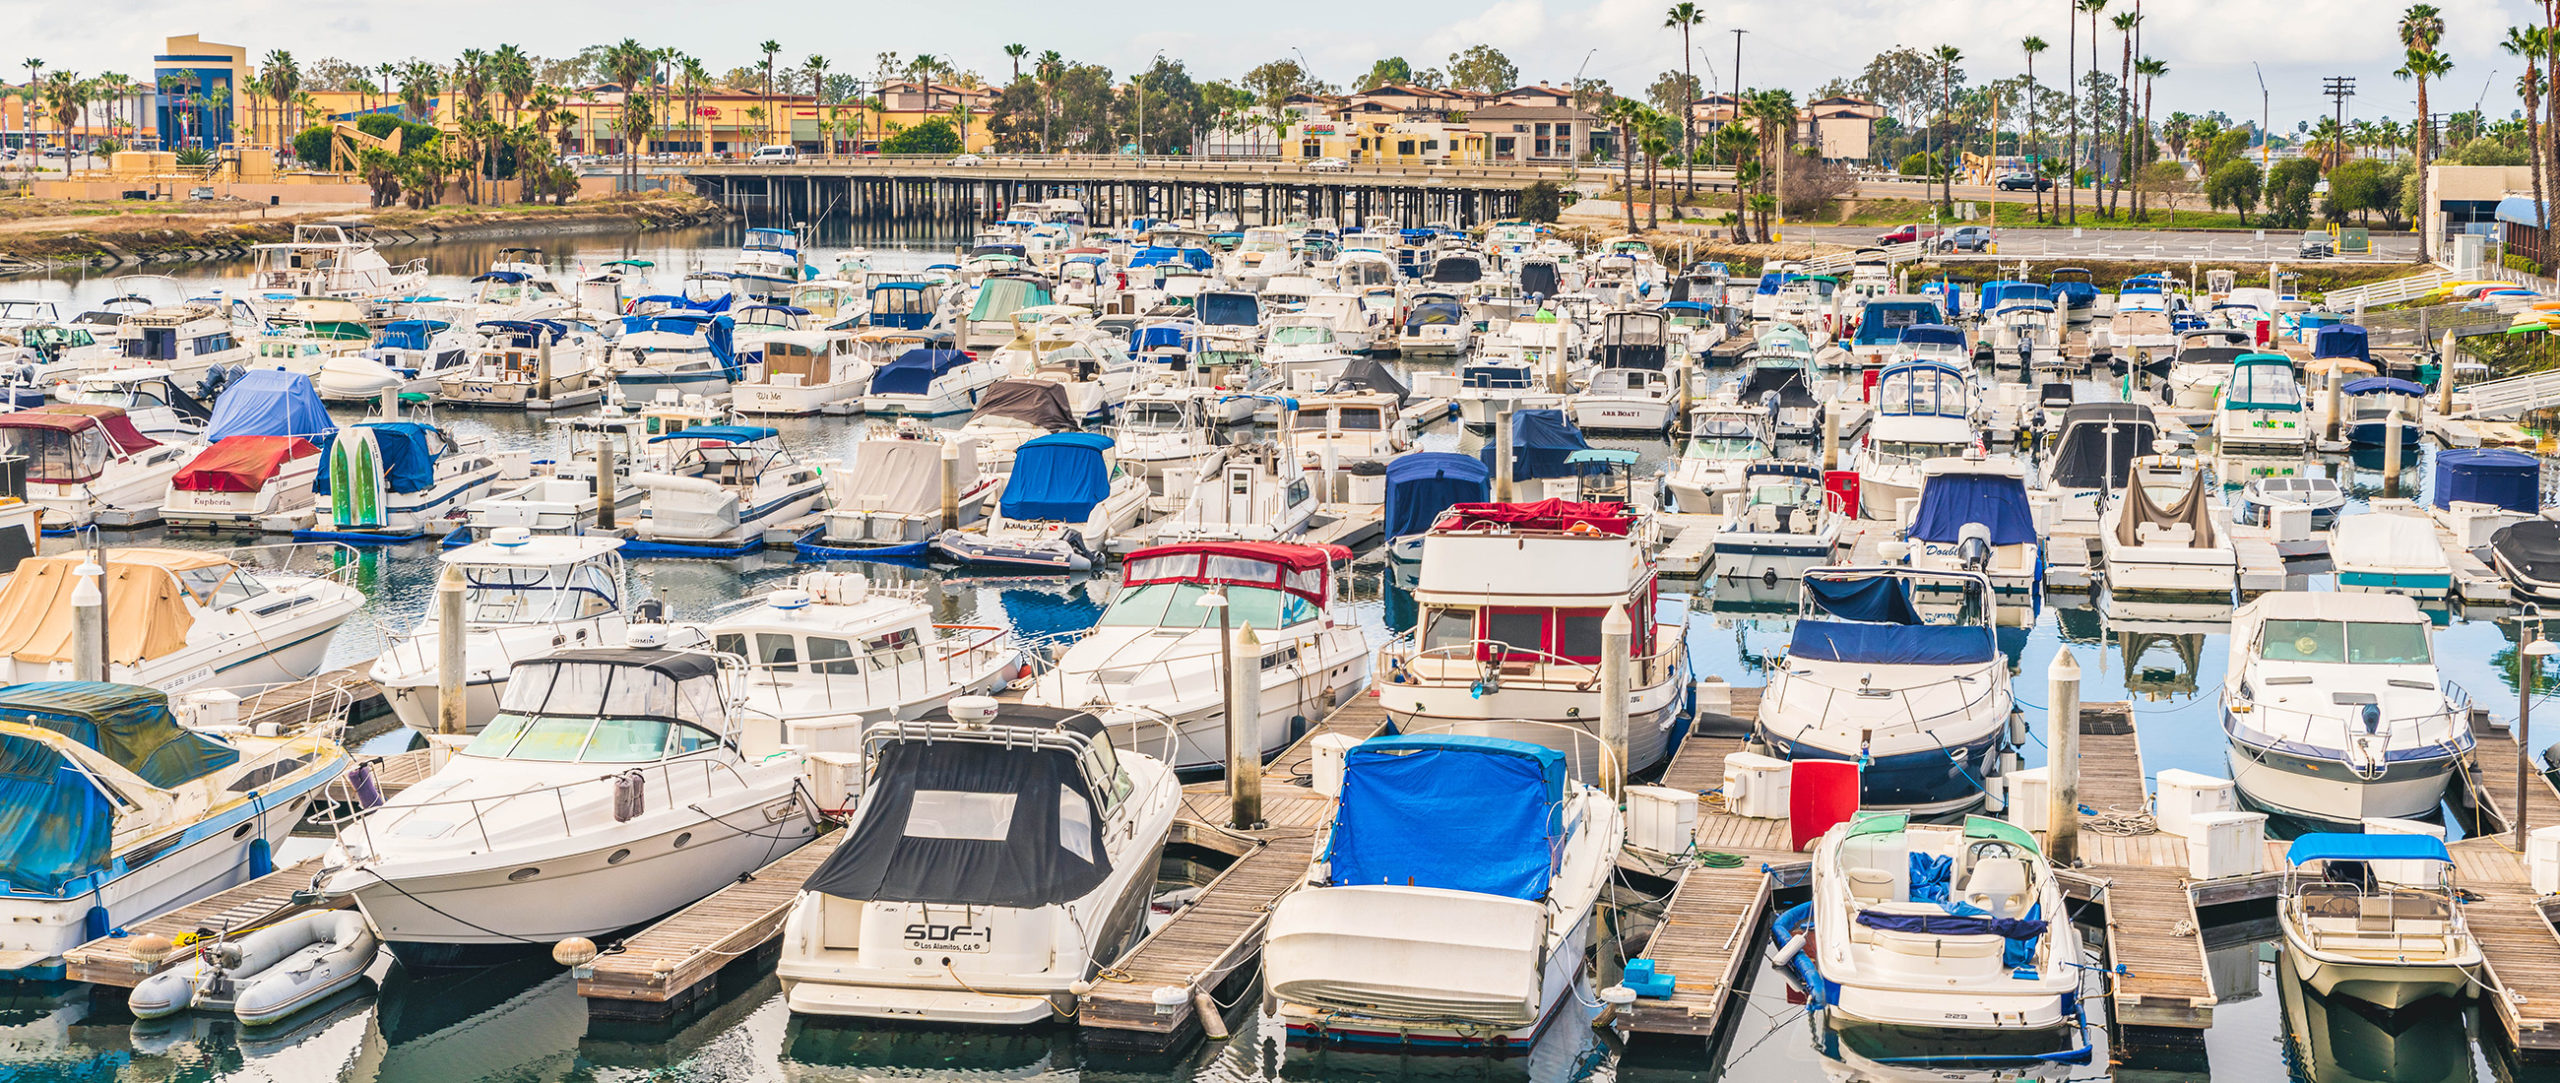 View of the marina